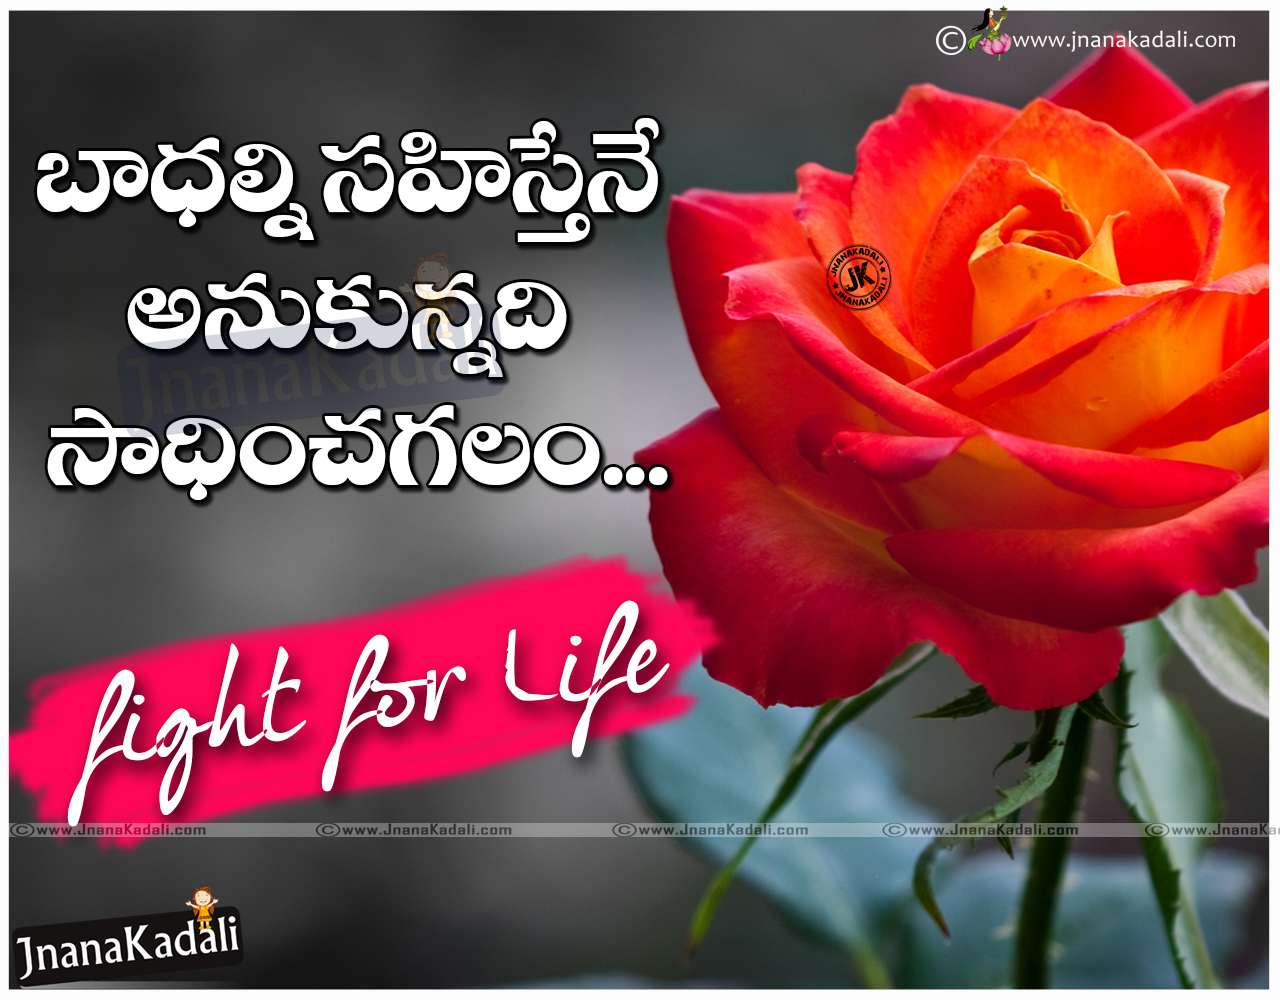 inspirational light for life telugu quotes with hd